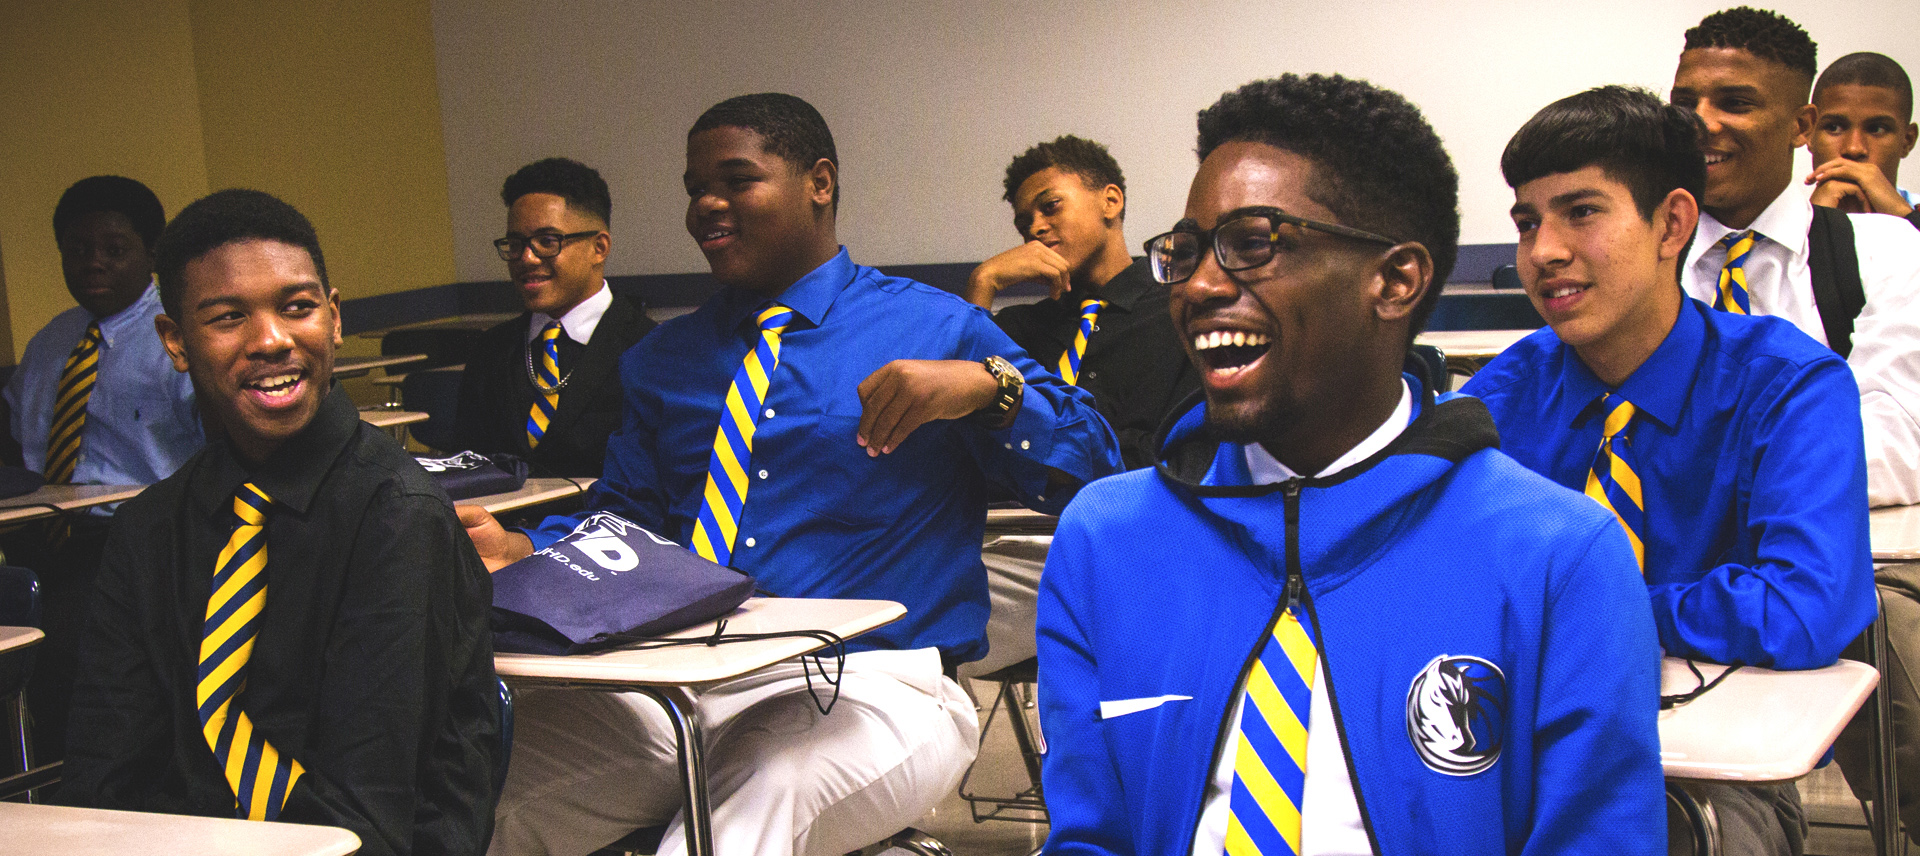 youths laughing in a class room